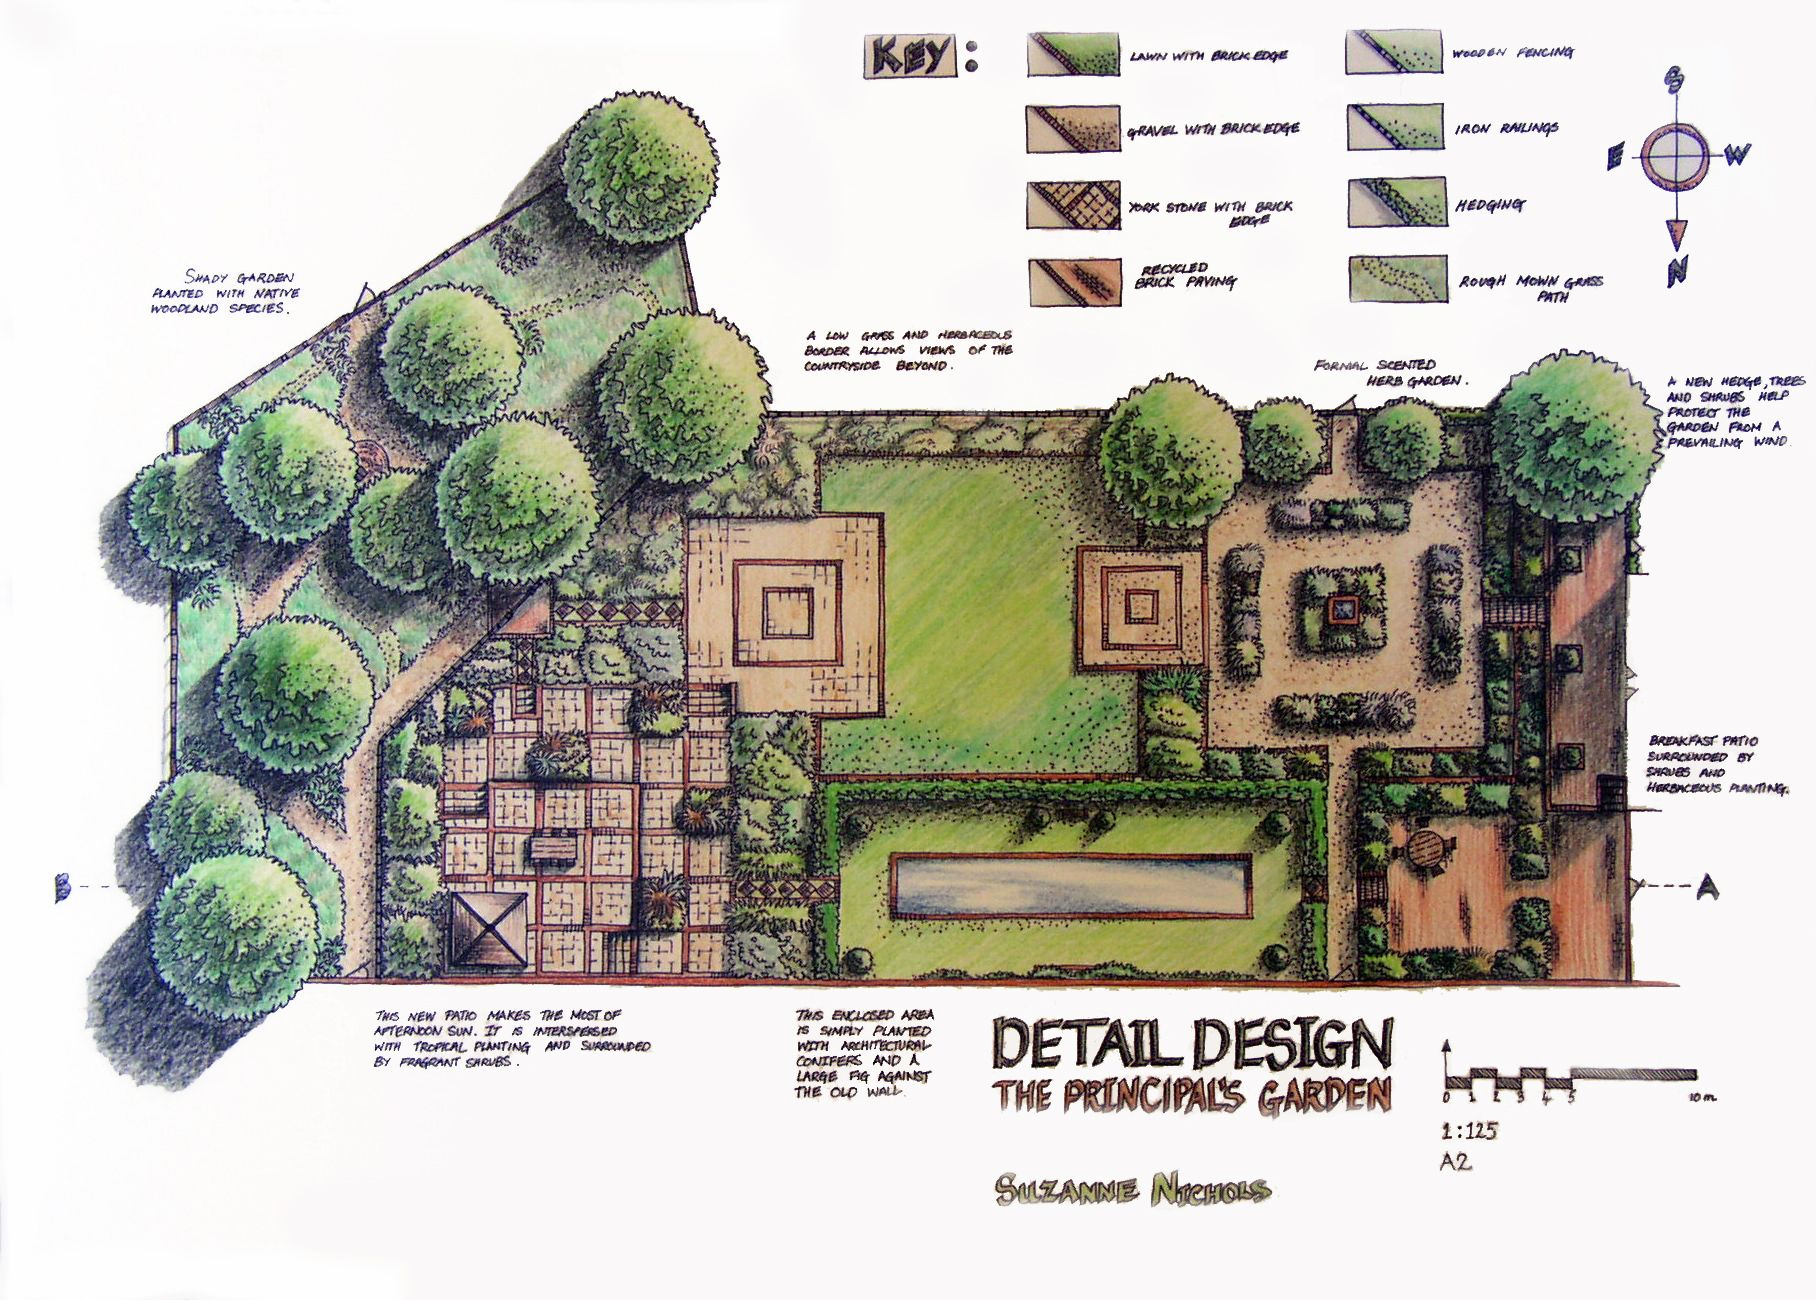 1000 images about landscape design on pinterest garden design plans landscape plans and landscape design